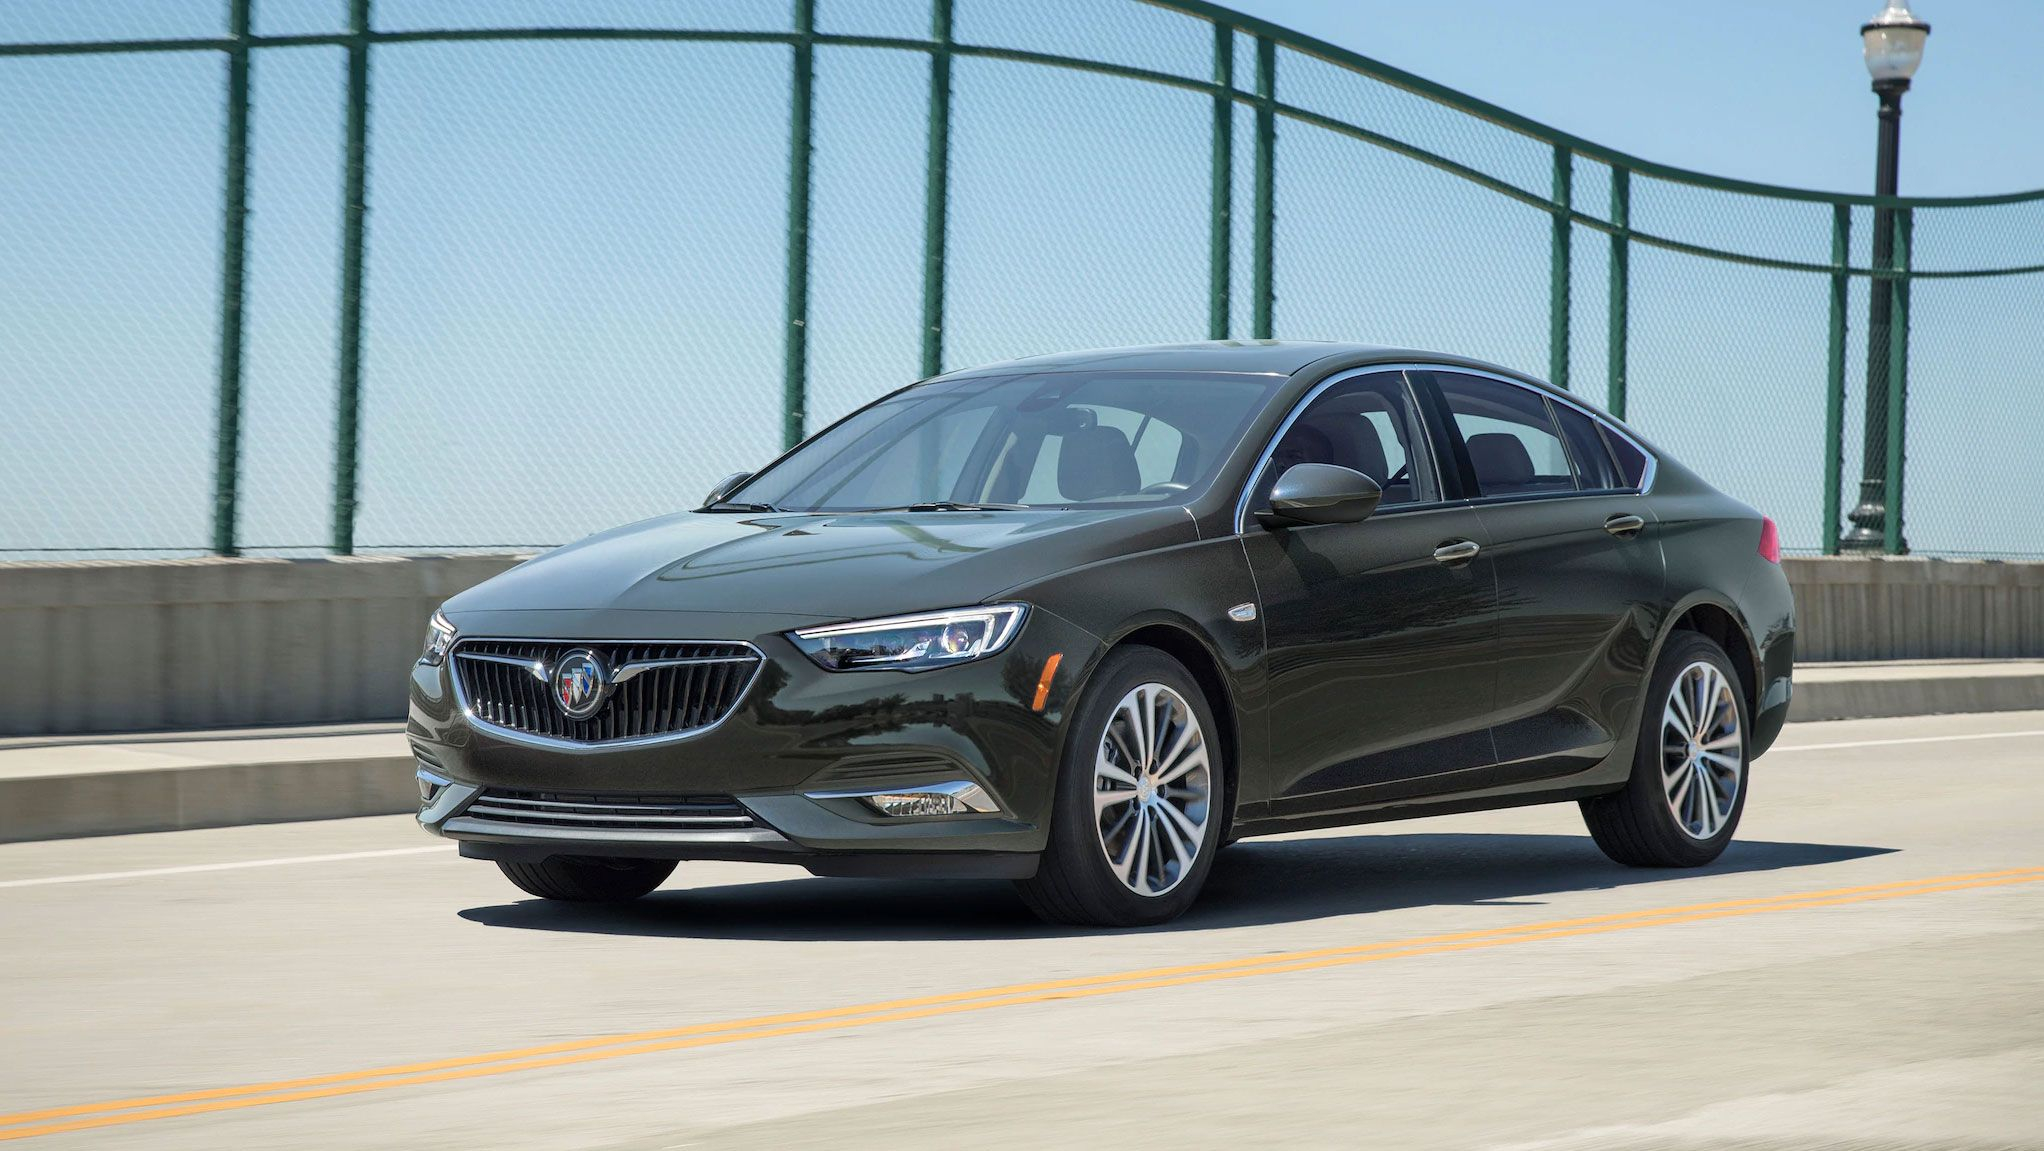 2020 Buick Regal Sportback Review, Pricing, And Specs New 2021 Buick Regal Brochure, Build, Models